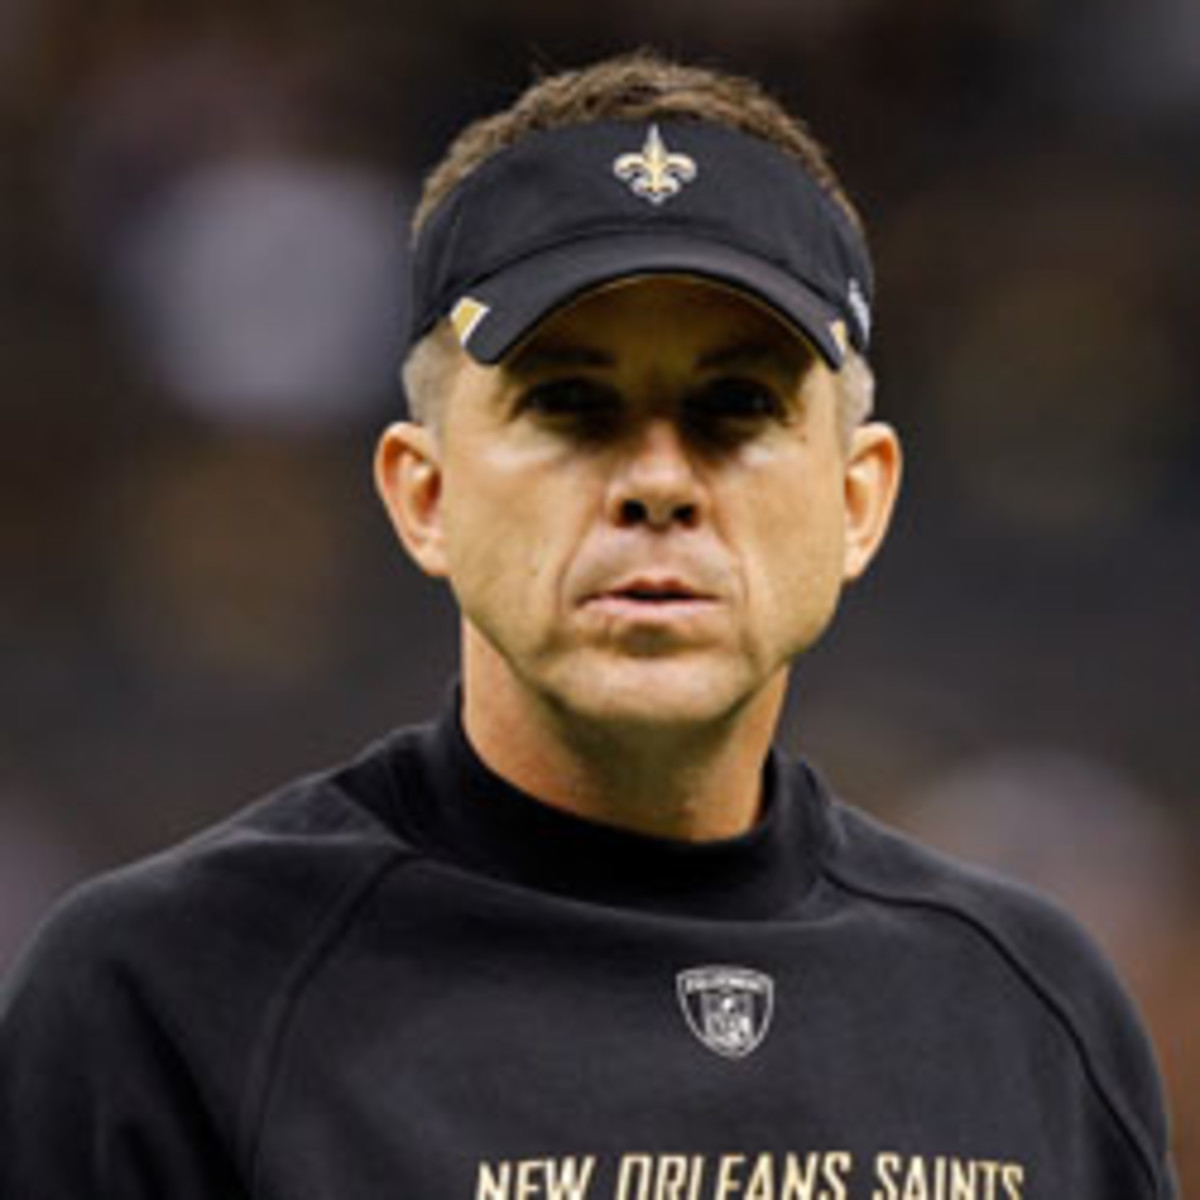 Saints coach Sean Payton is reportedly set to make more than $8 million a season when he returns to the sidelines. (Chris Graythen/Getty Images Sport)